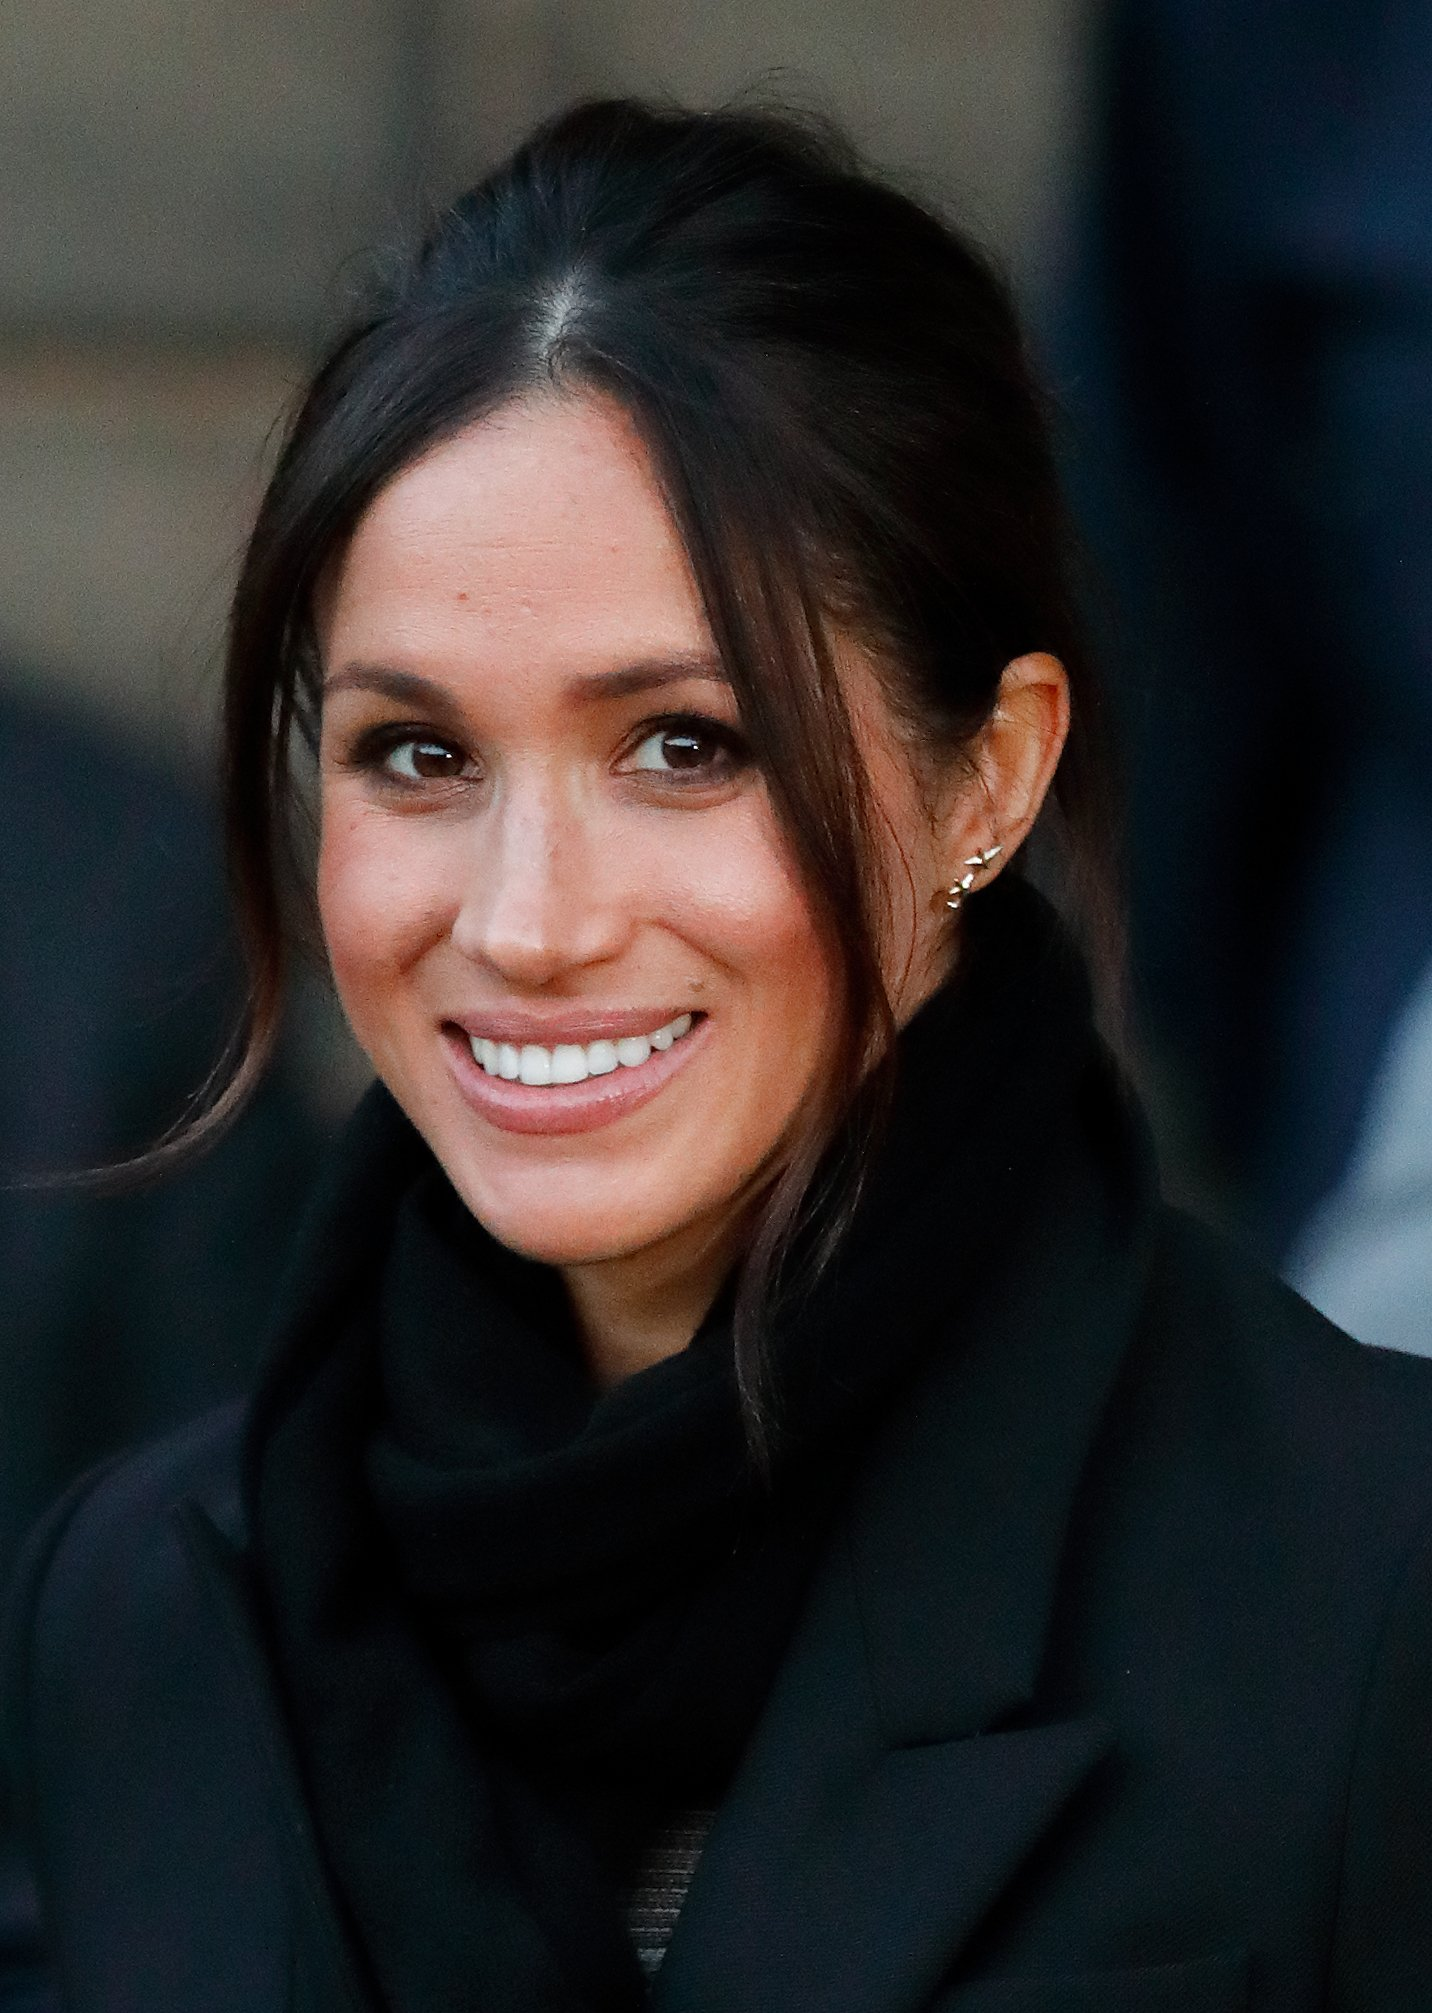 Image Credits: Getty Images | Actress, Meghan Markle is photographed by the press.